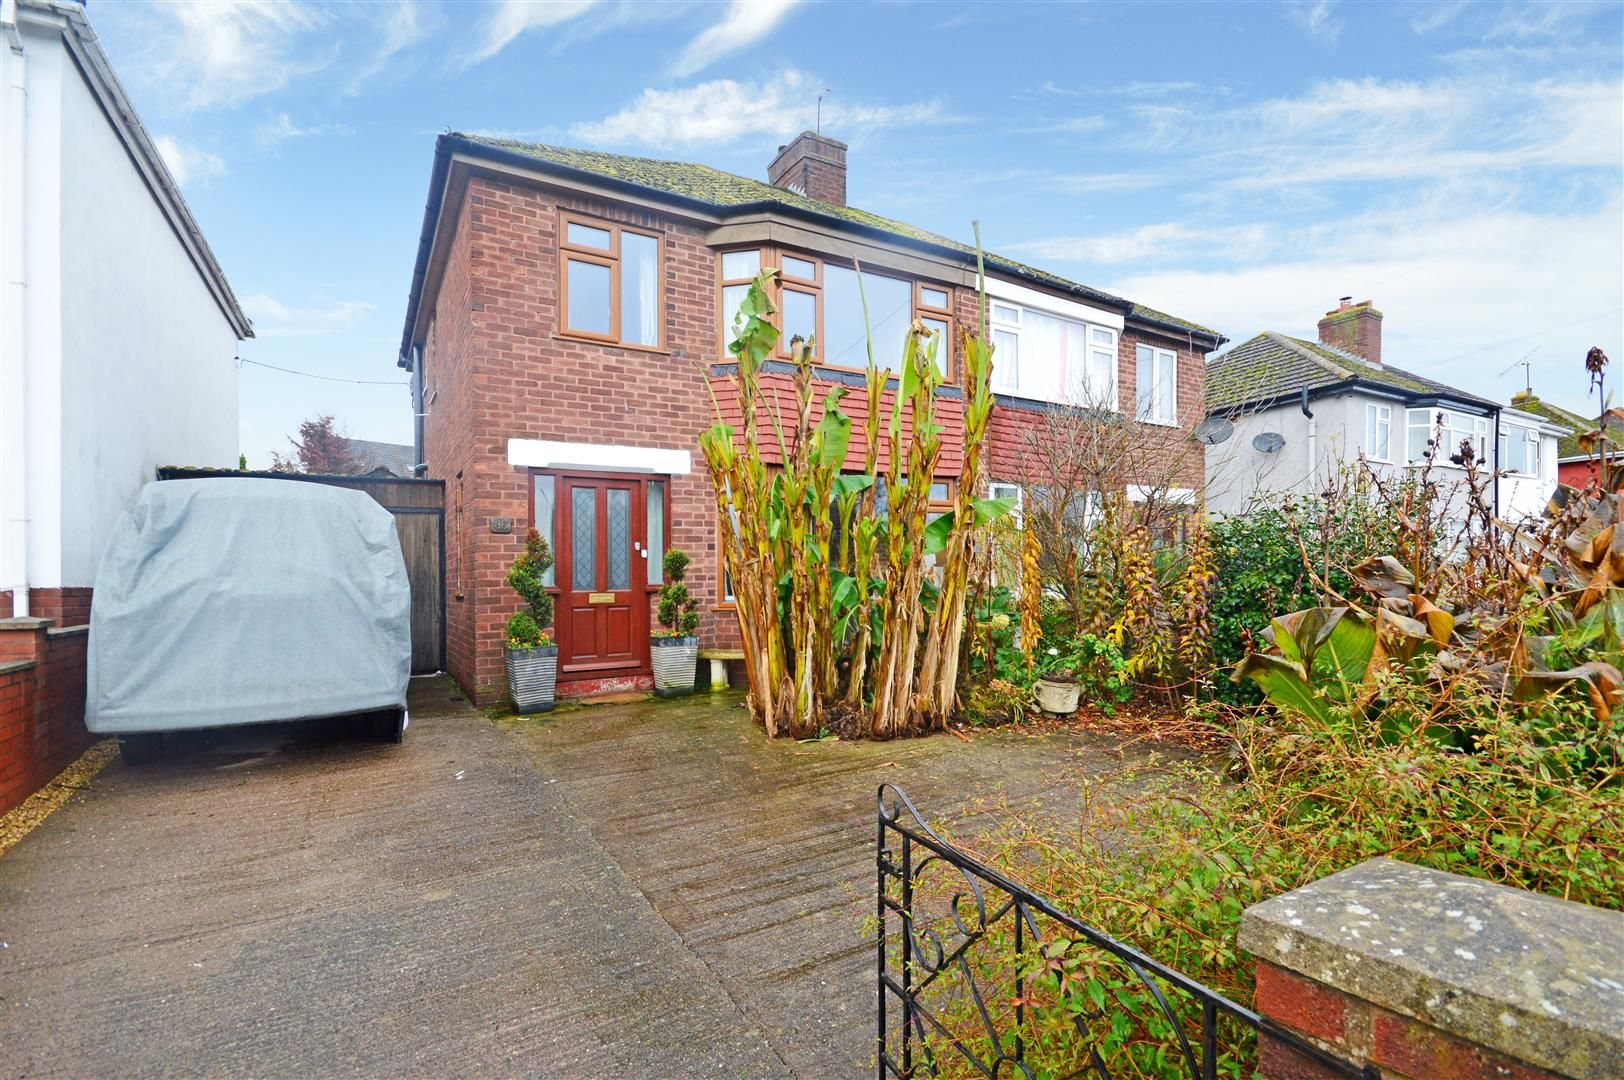 3 bed semi-detached for sale in Hereford, HR2